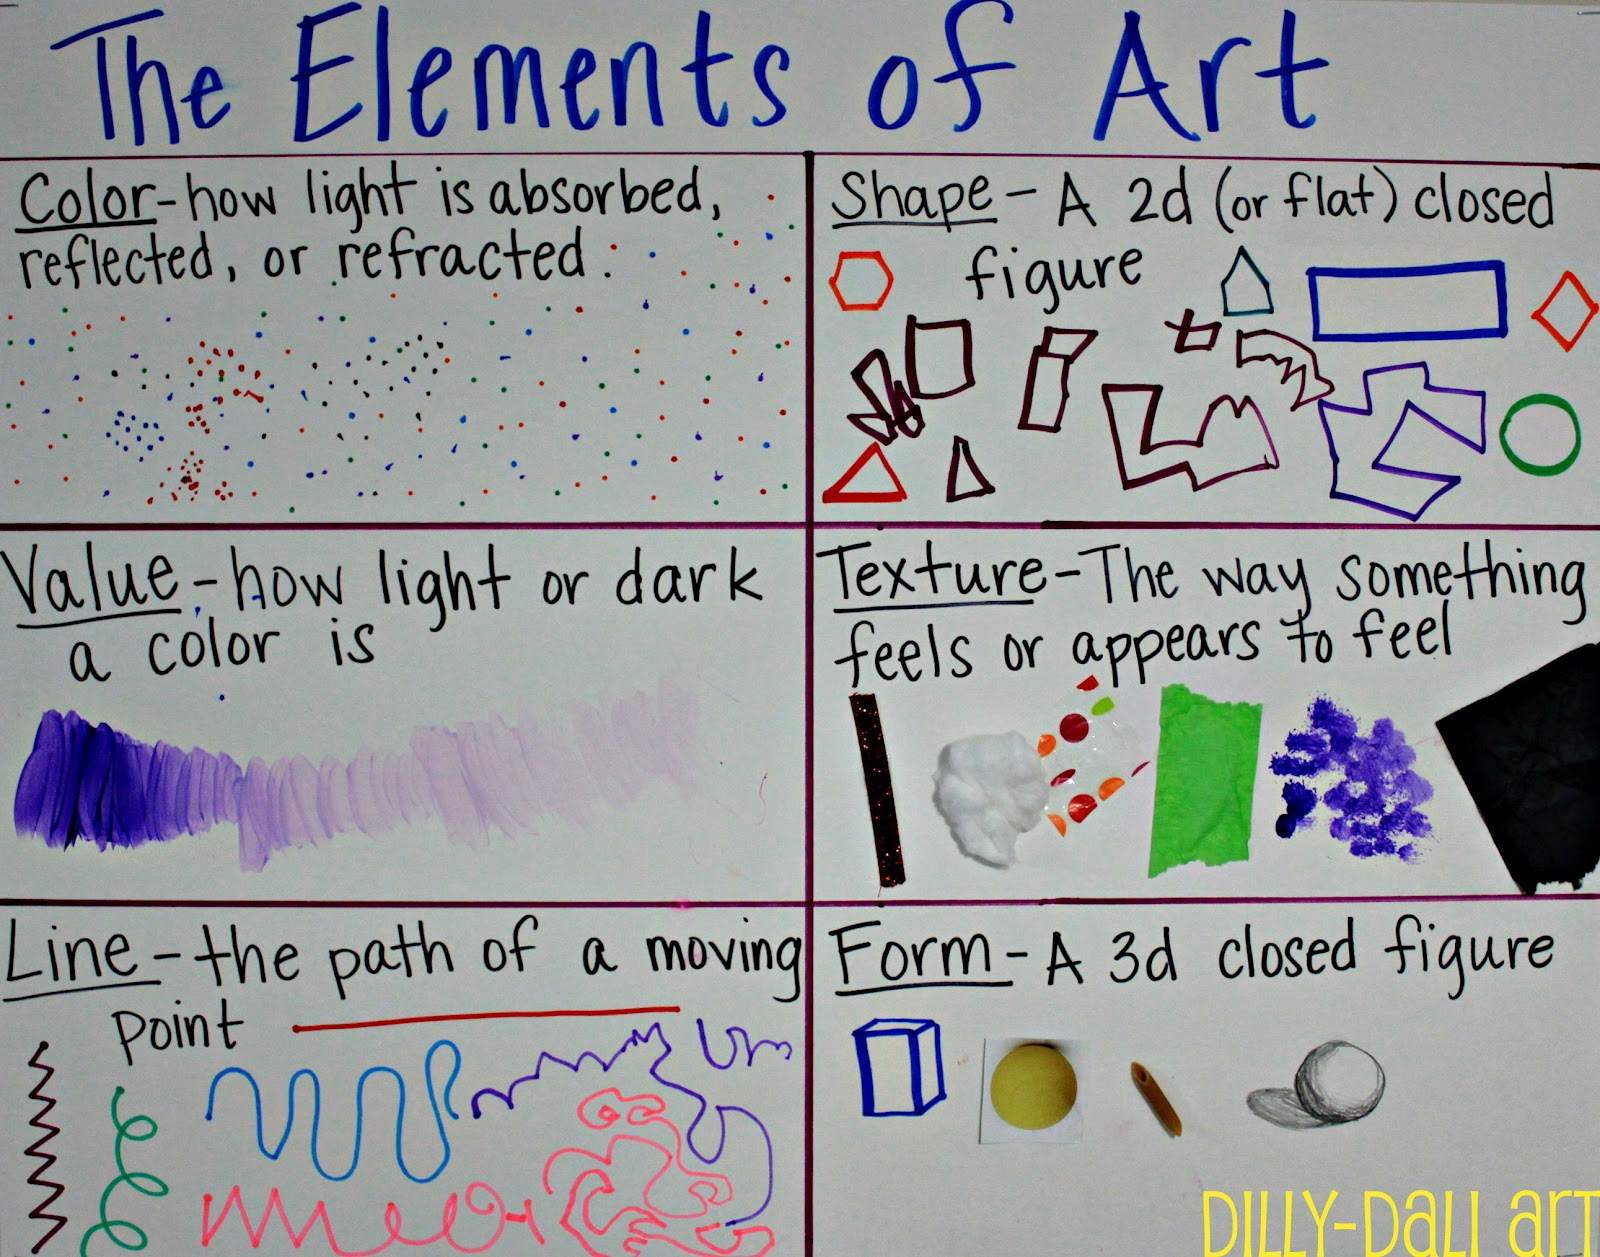 8 Elements Of Art : Dilly dali art elements of poster